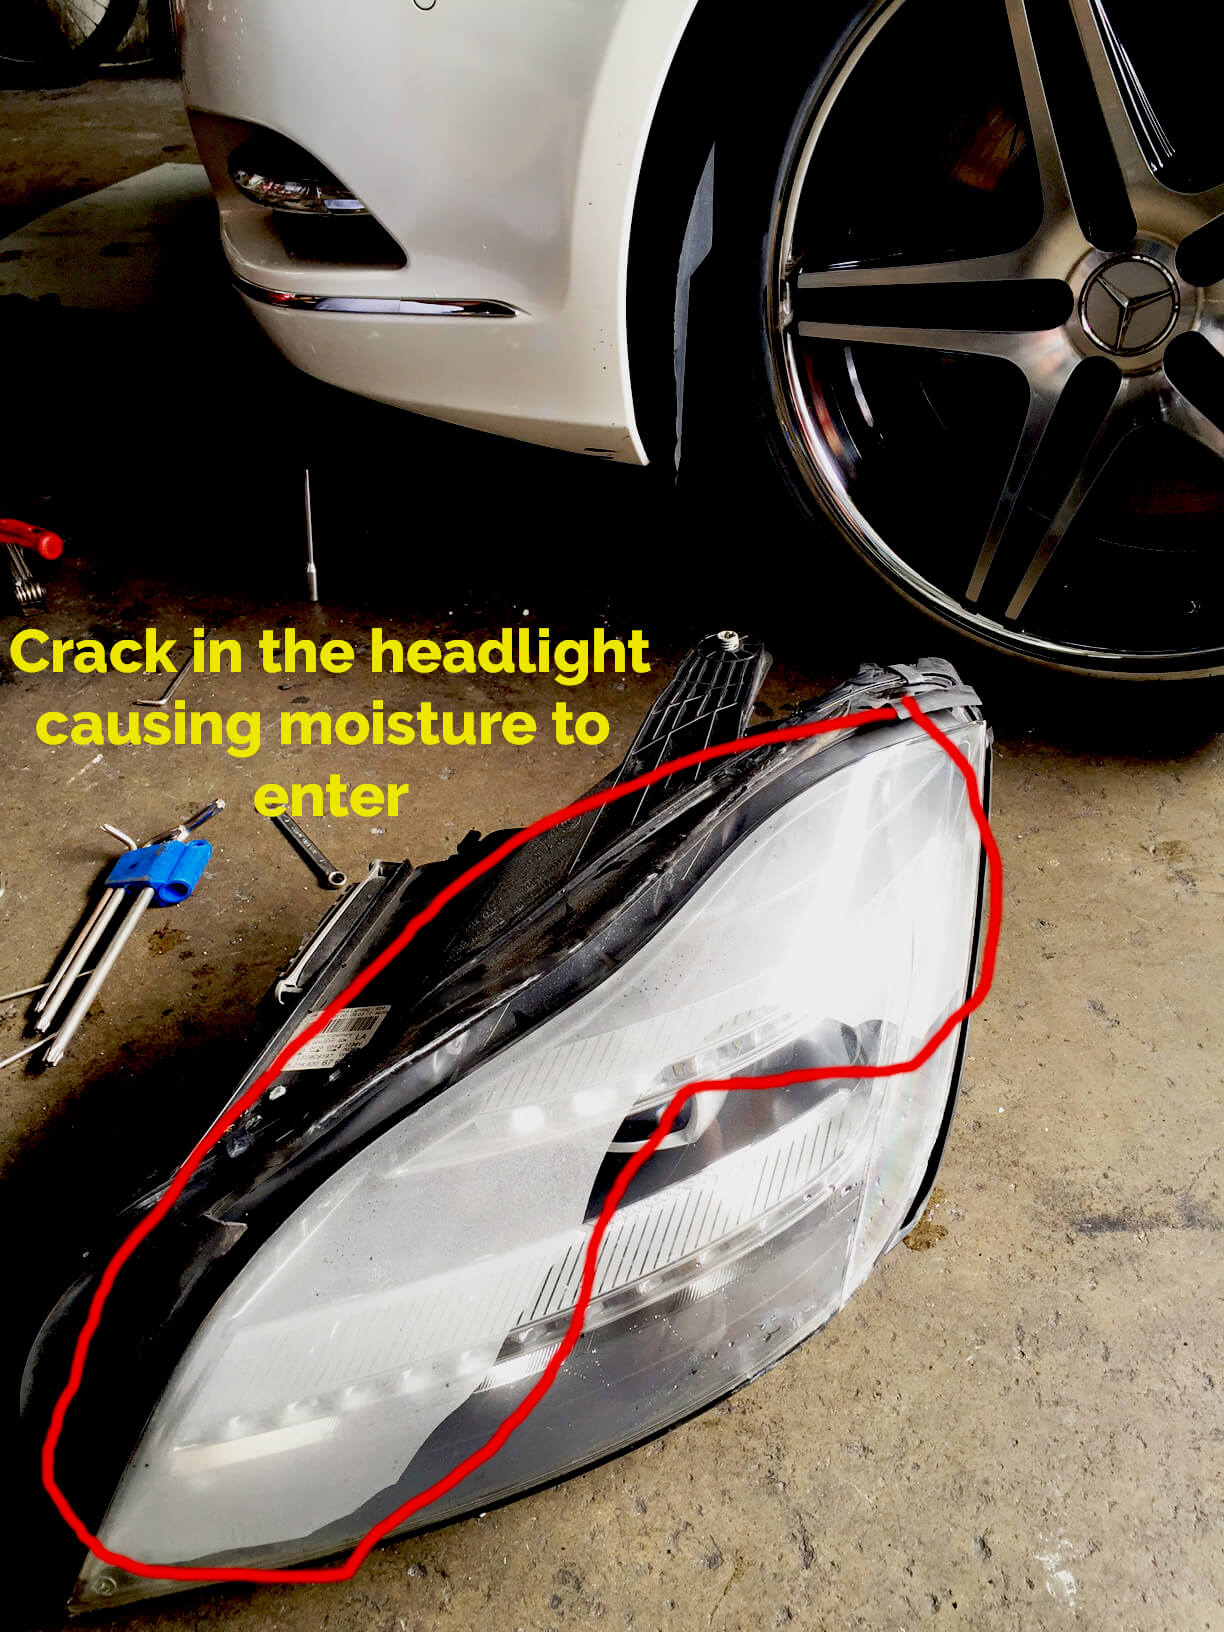 Existing headlamp that had a crack and resulted in the development of moisture inside the headlamp cover